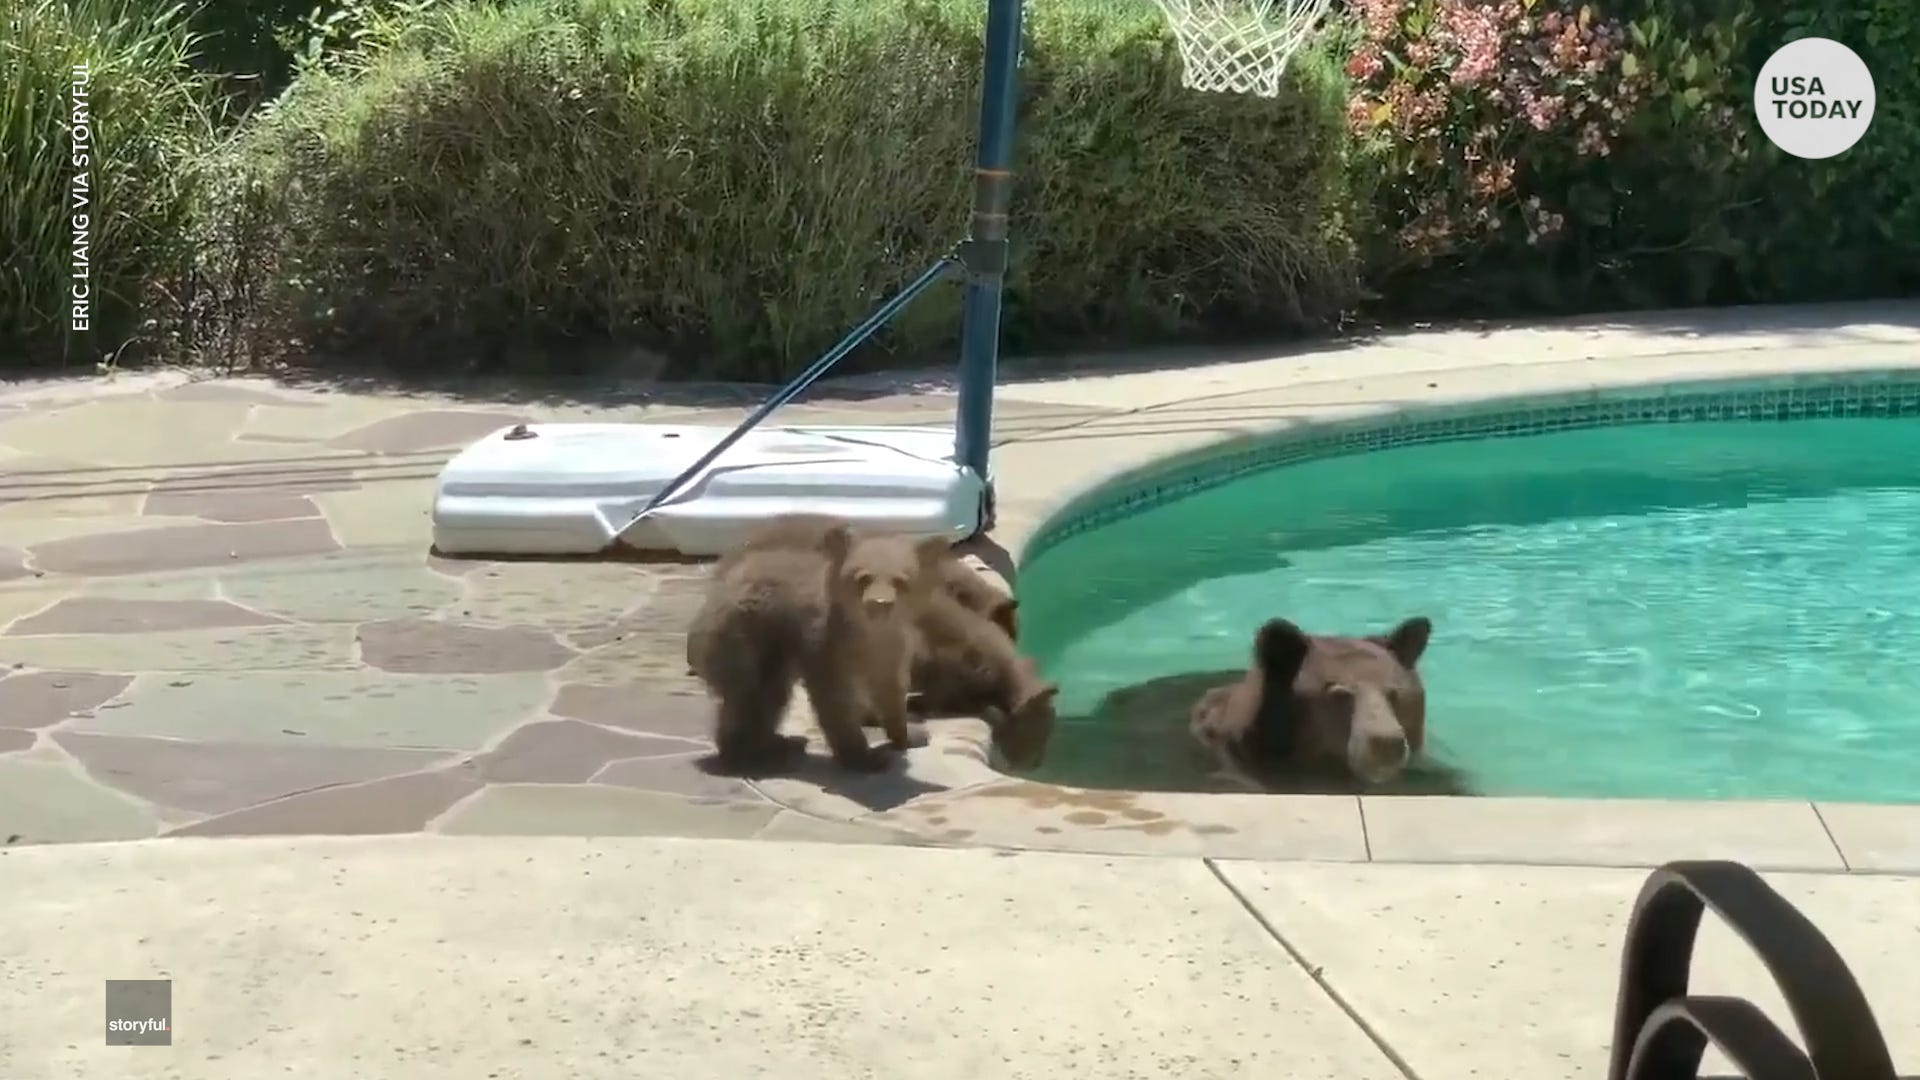 Mama bear enjoys 'me time' in family's swimming pool while cubs look on